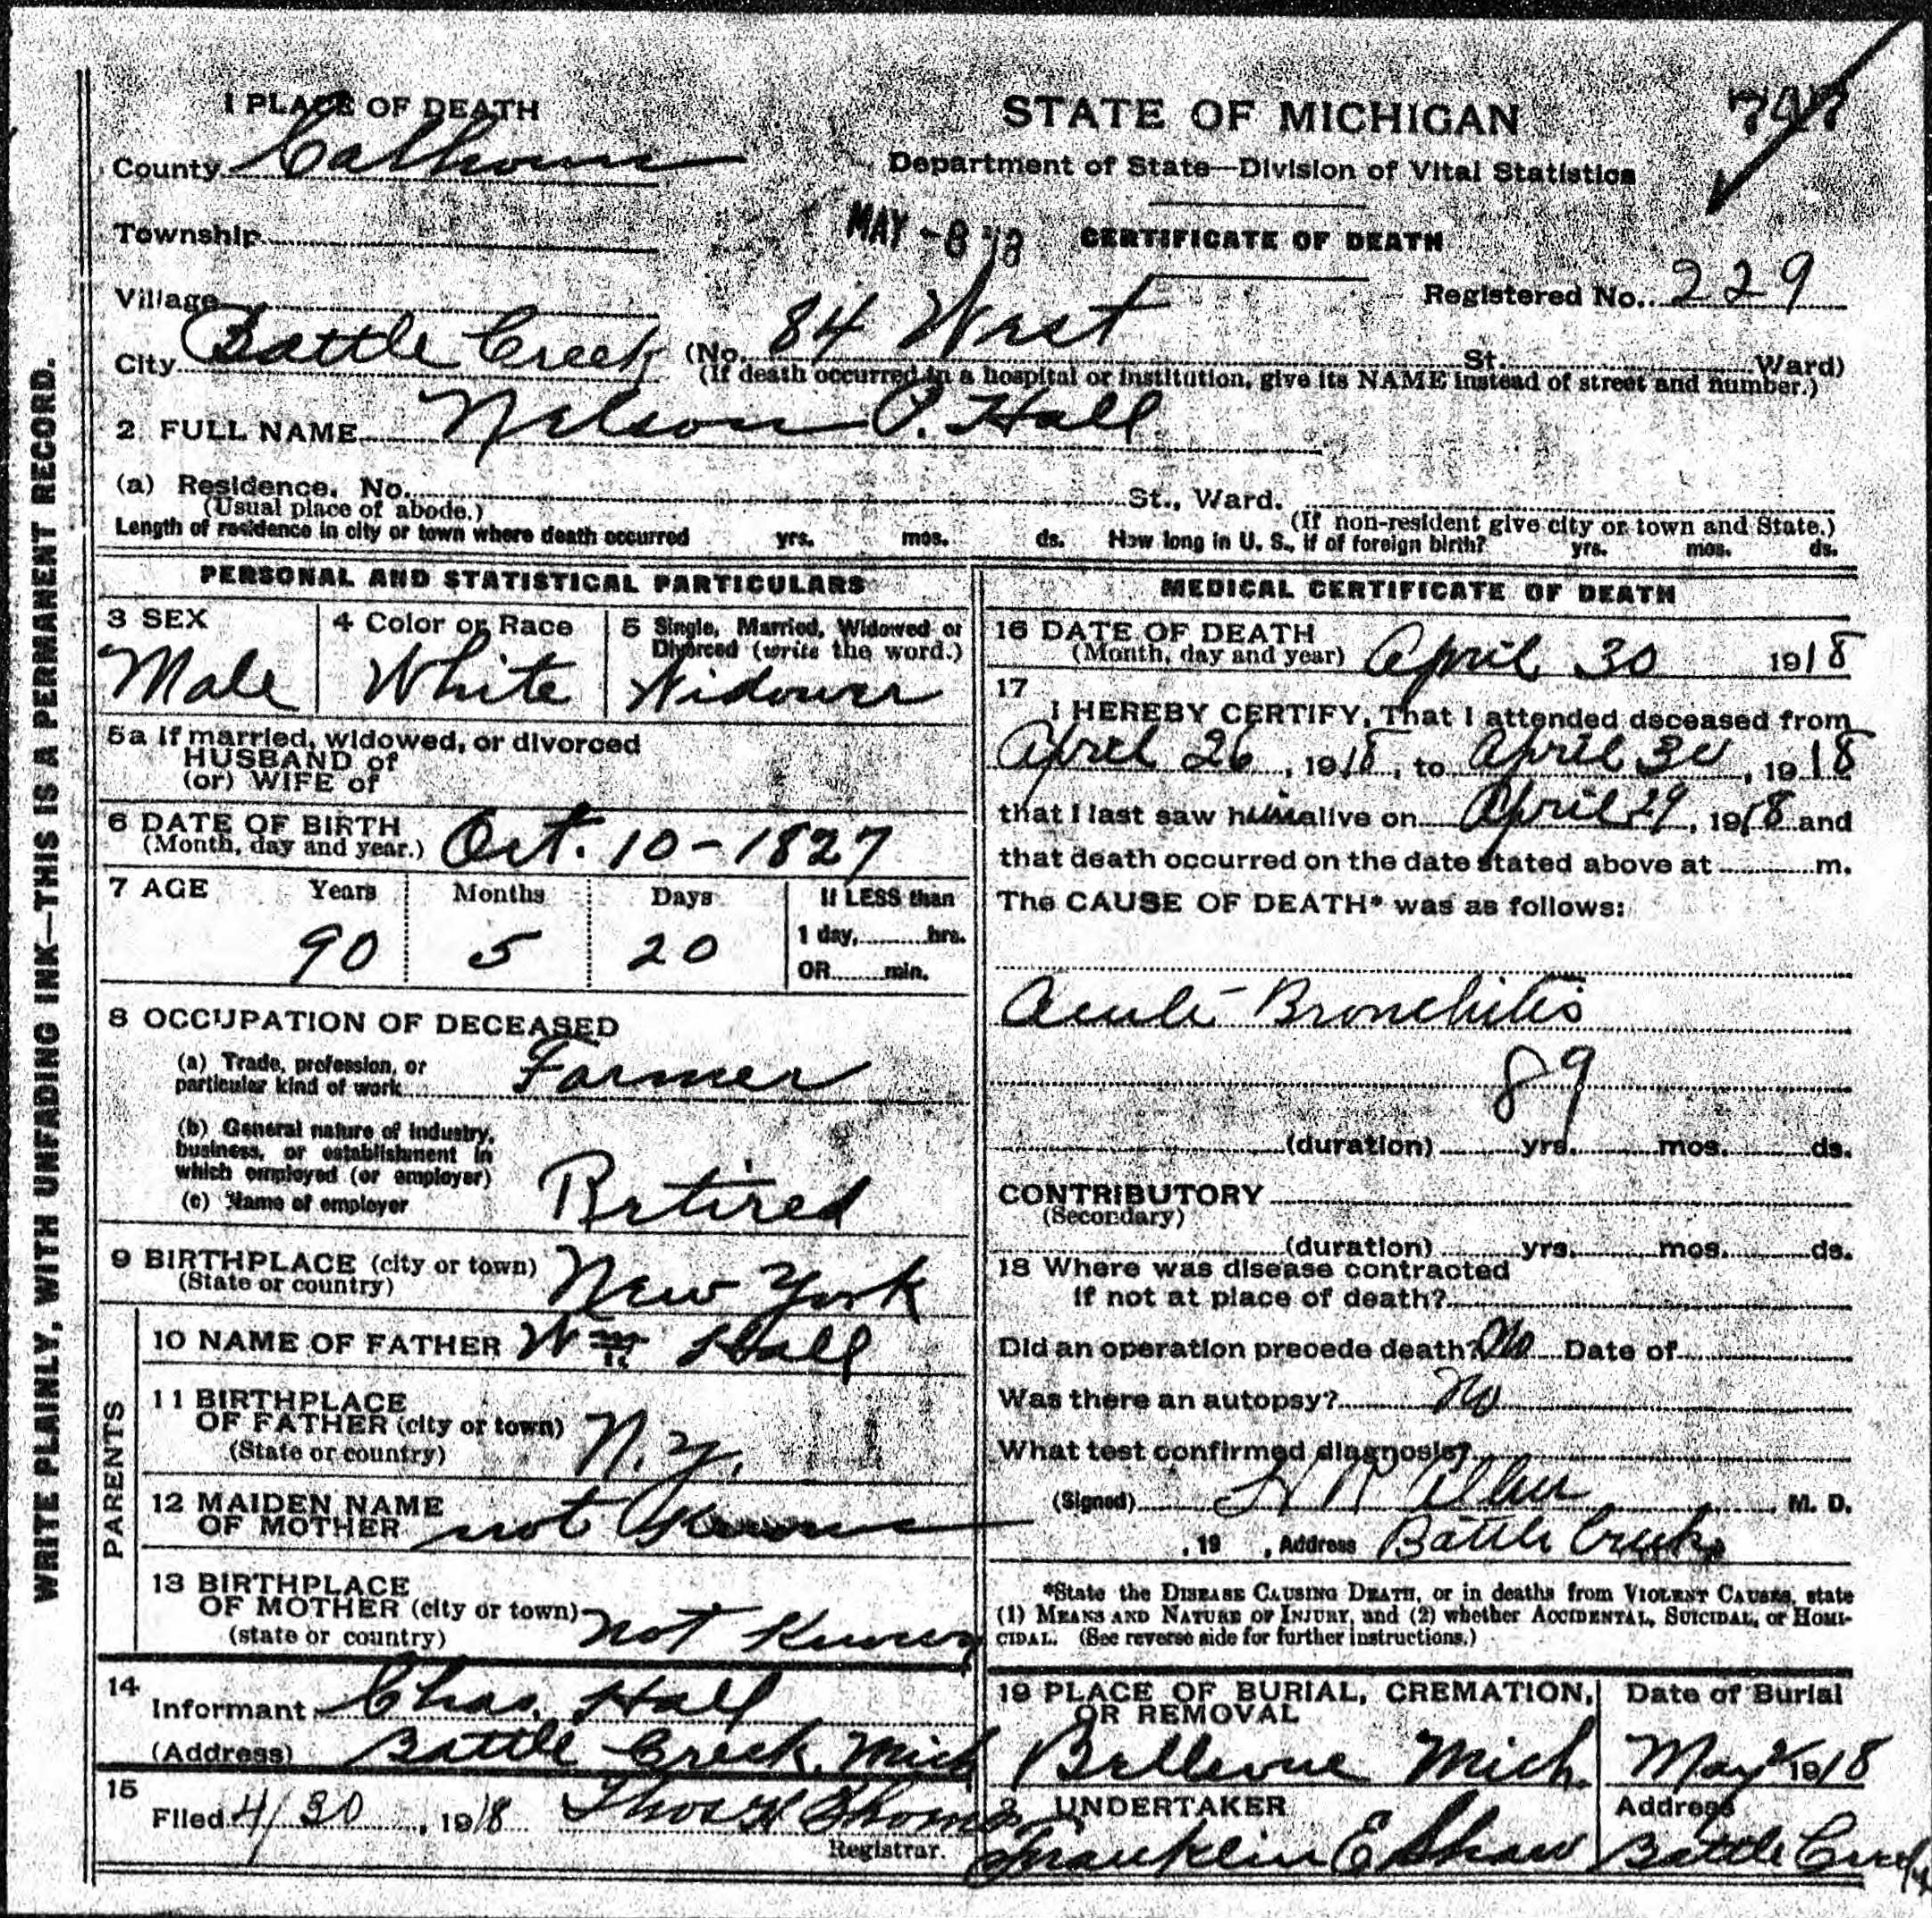 Death Certificate for Nelson P. Hall.